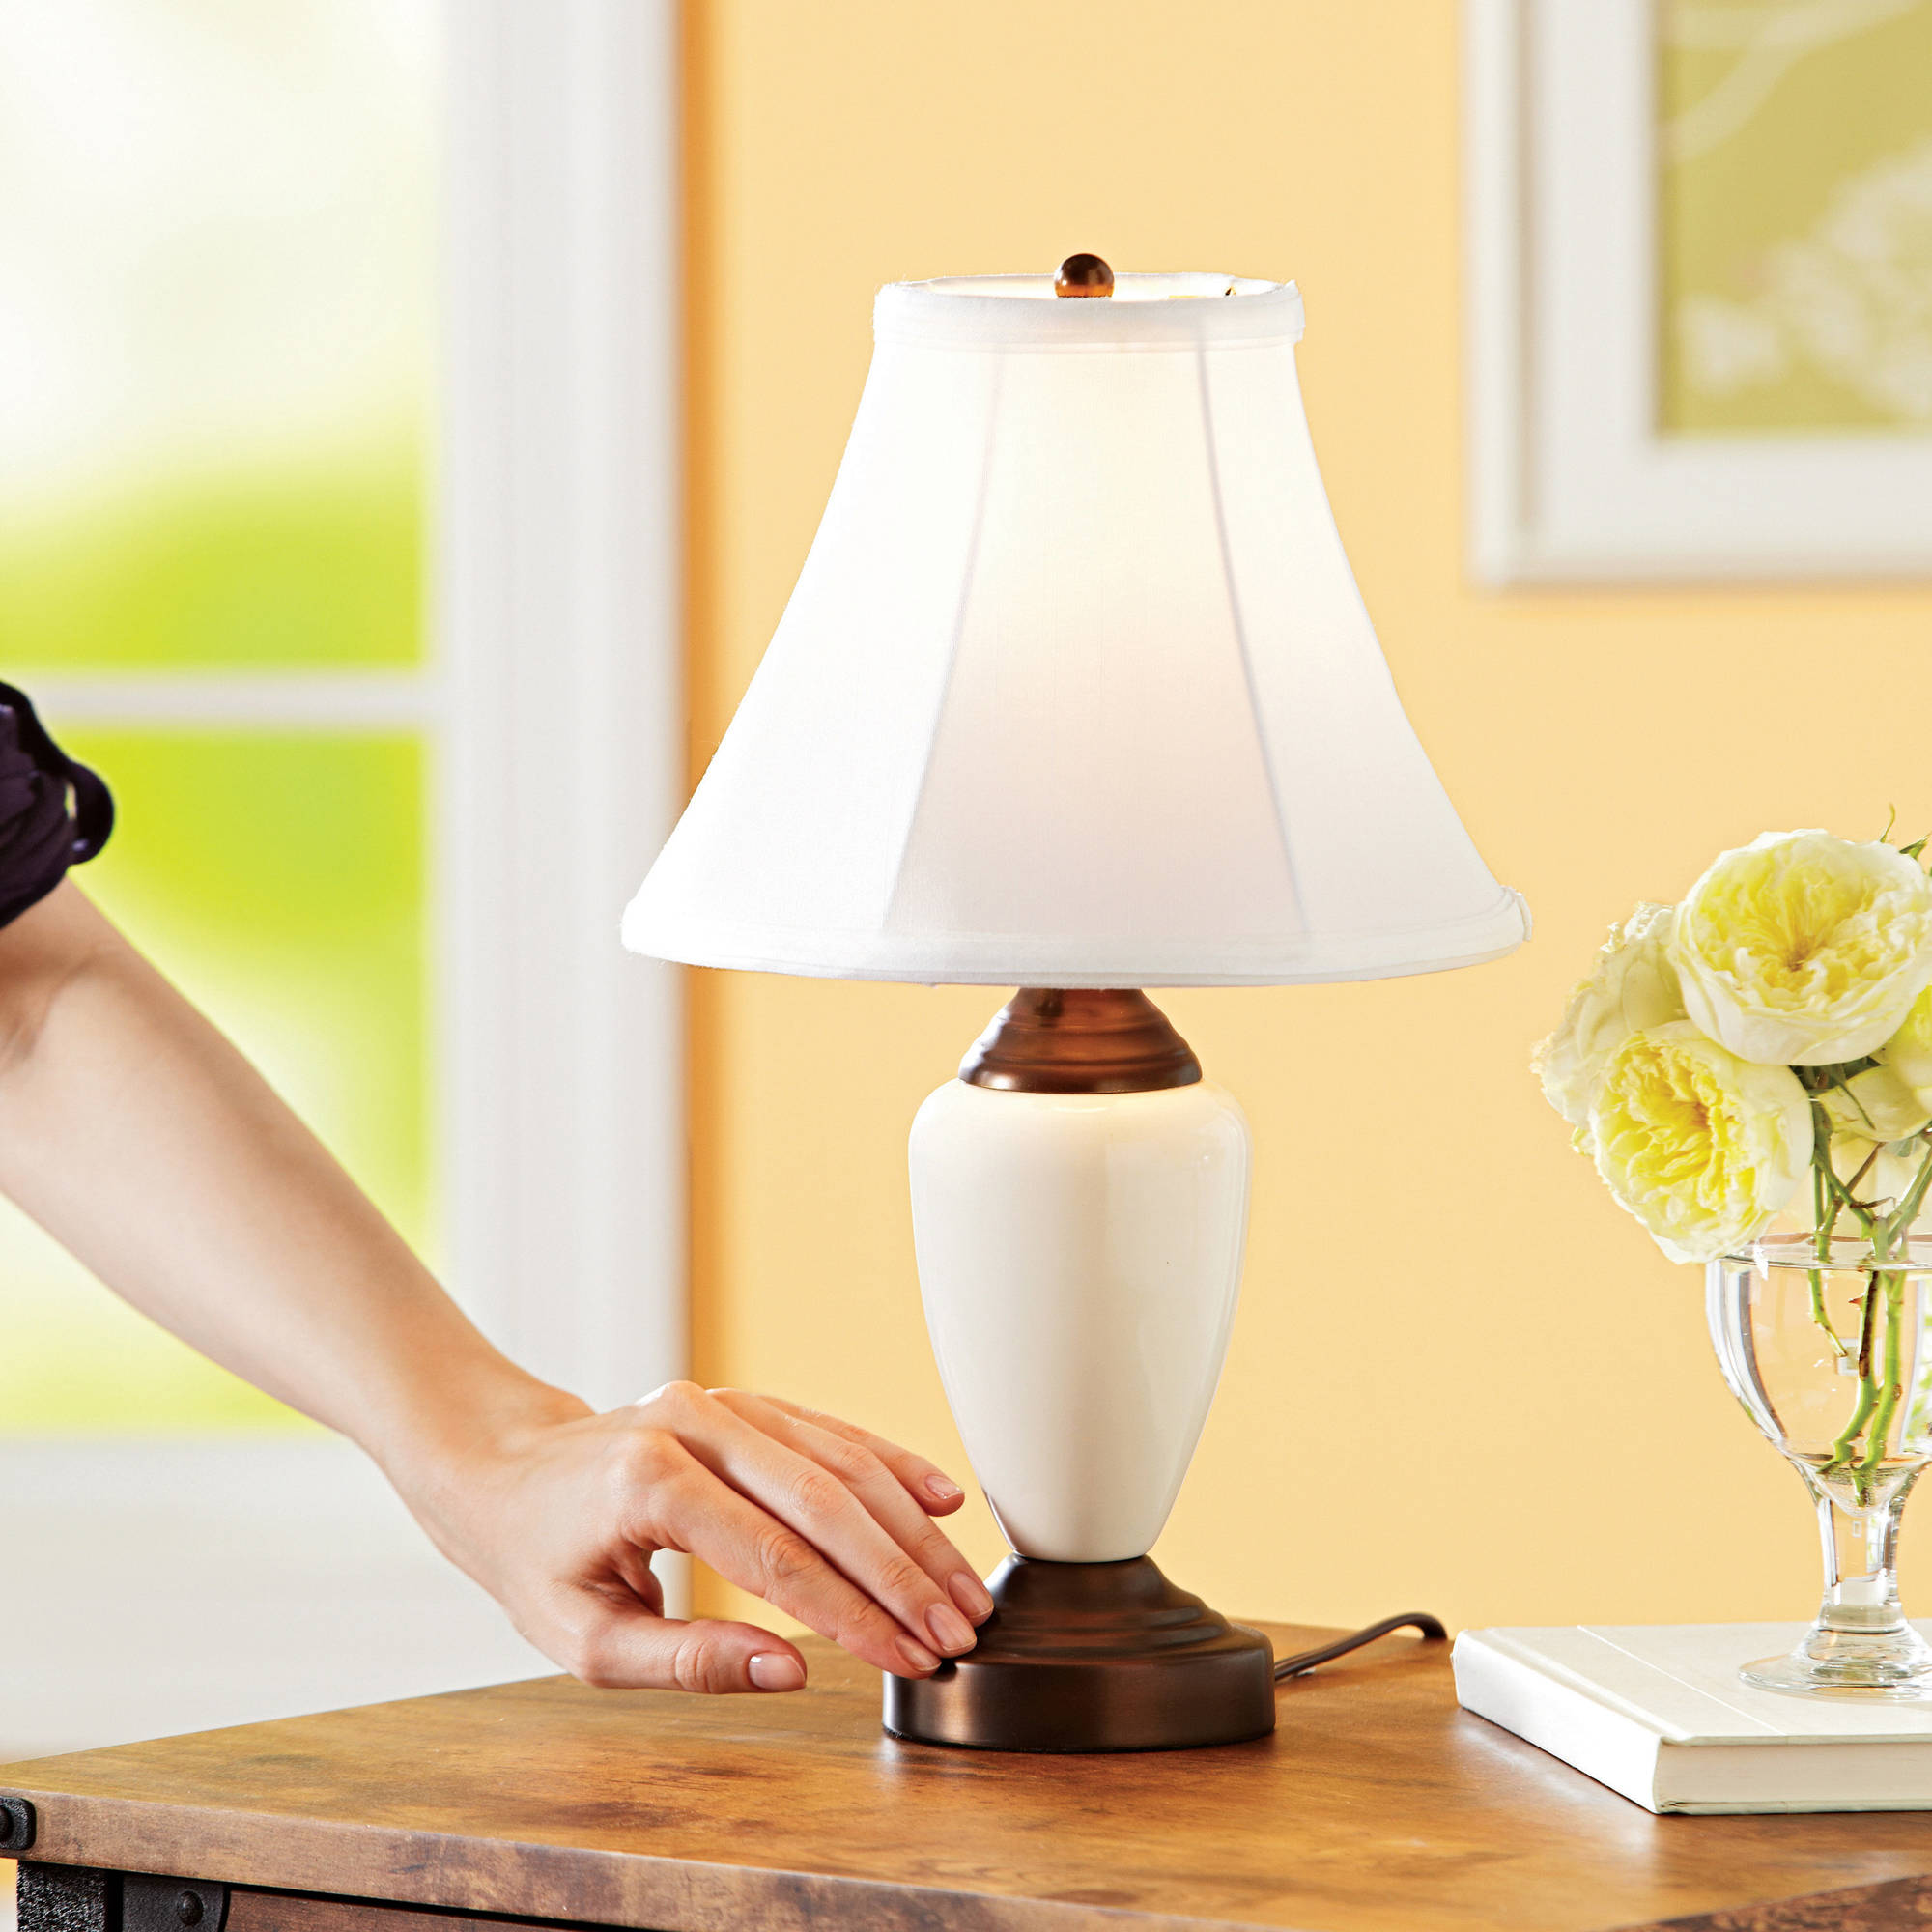 Genial Better Homes U0026 Gardens Touch Lamp, Multiple Colors   Walmart.com